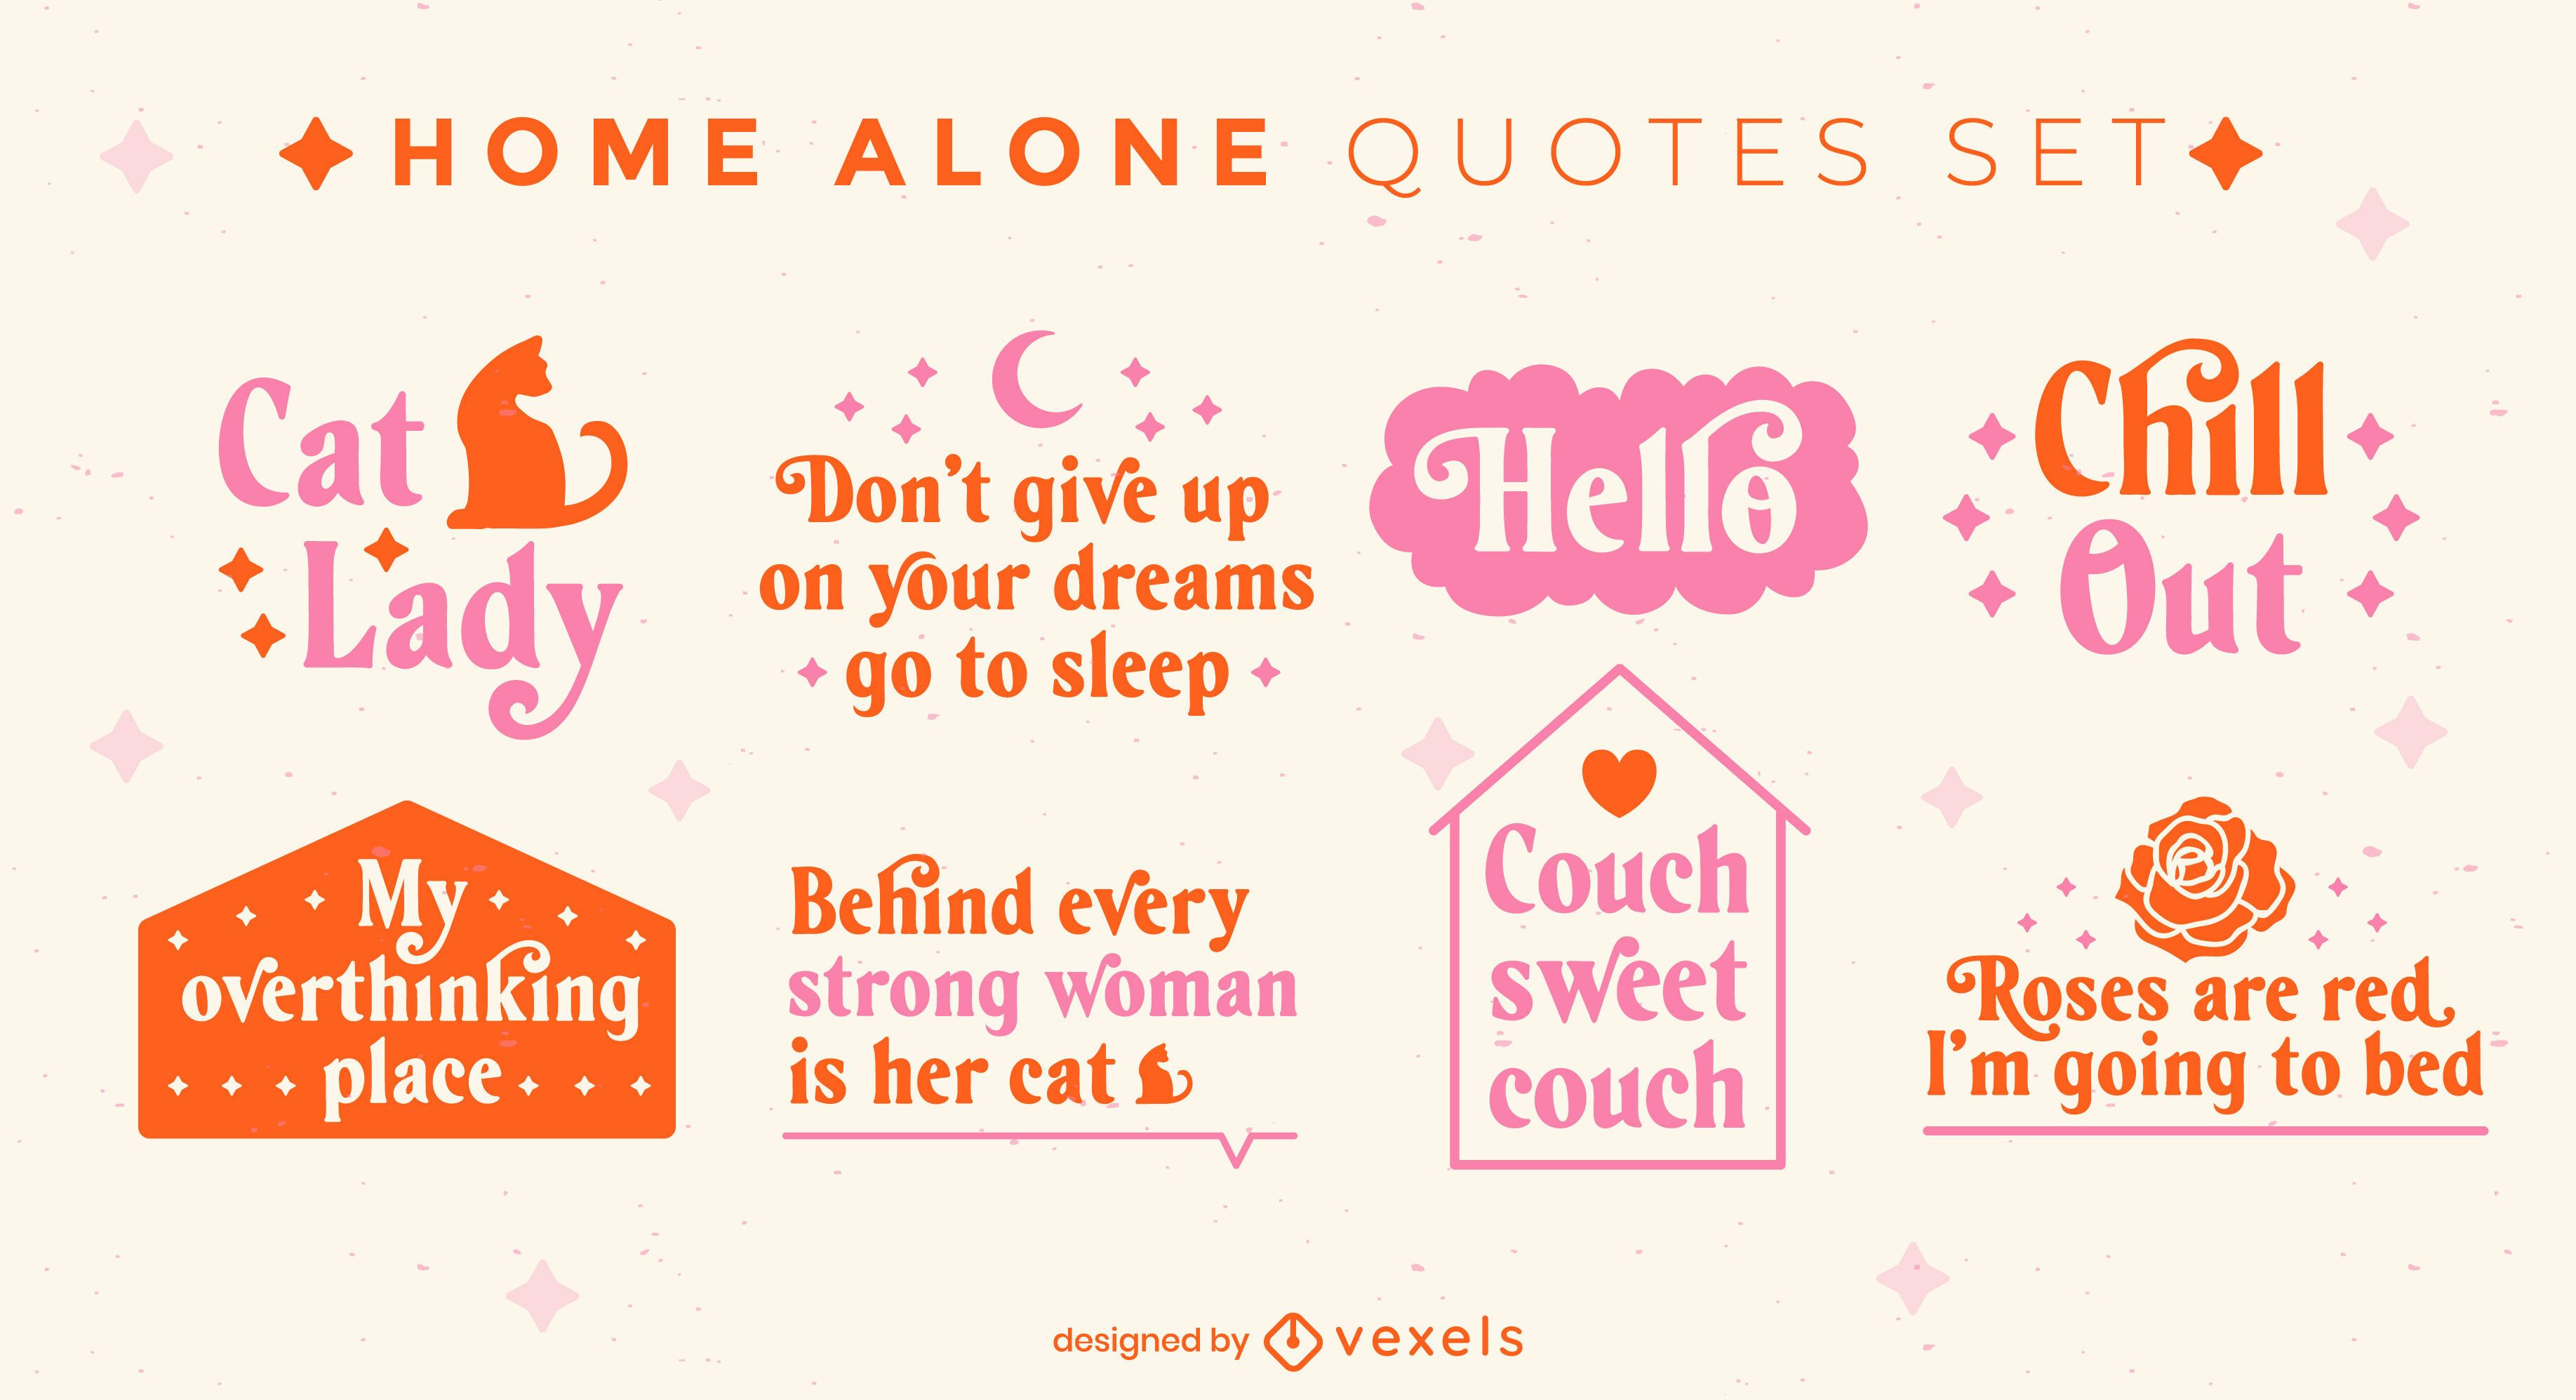 Classy home alone quotes set